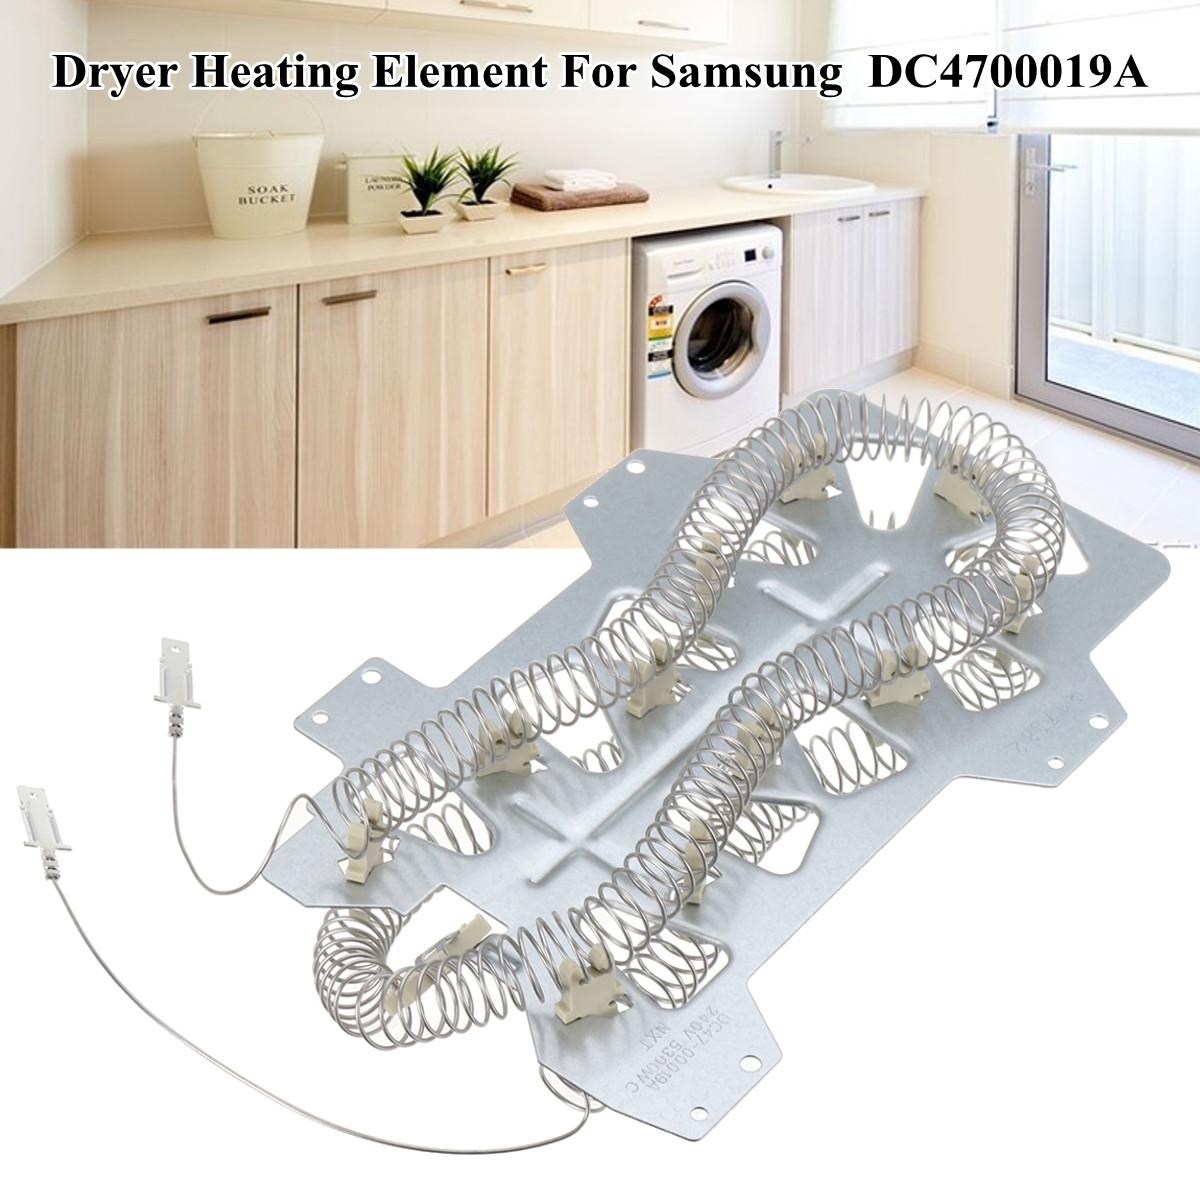 Dryer Heater Heating Element Replacement Kit 240V 5300WC For SAMSUNG DC4700019A DC47-00019A